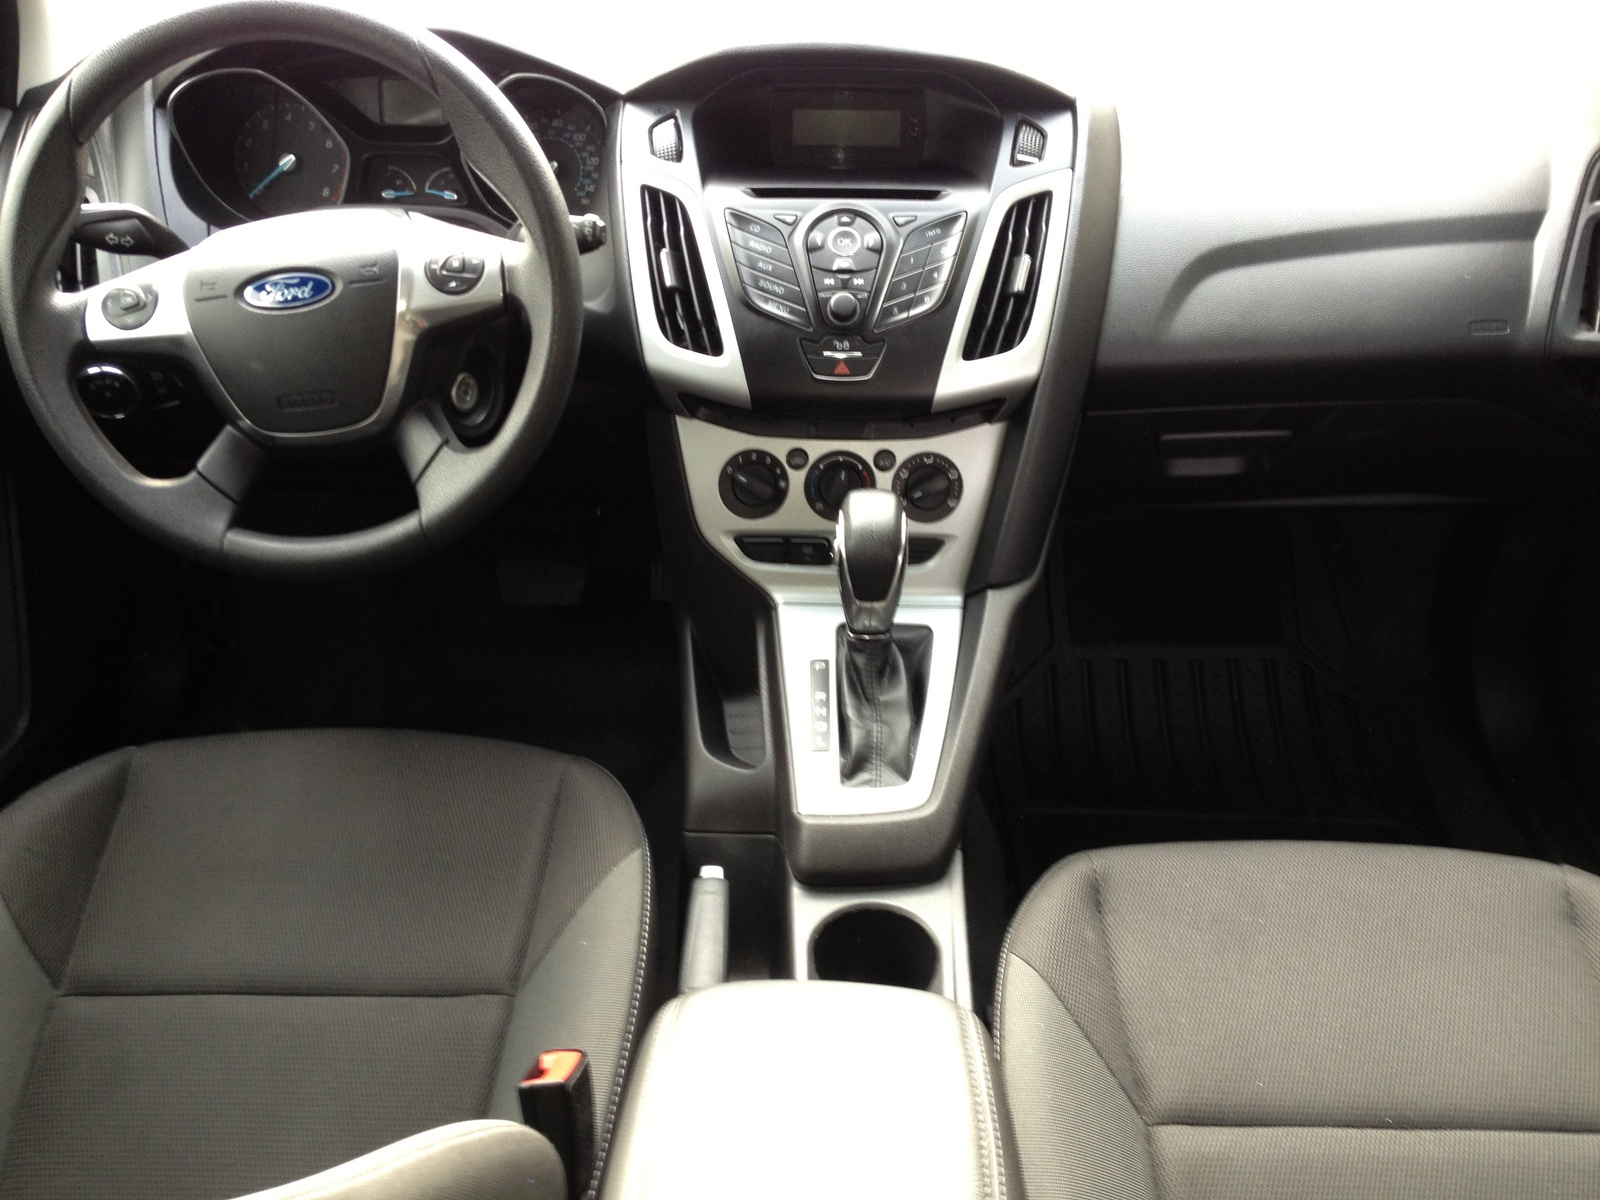 picture of 2012 ford focus se hatchback interior 1600x1200 picture